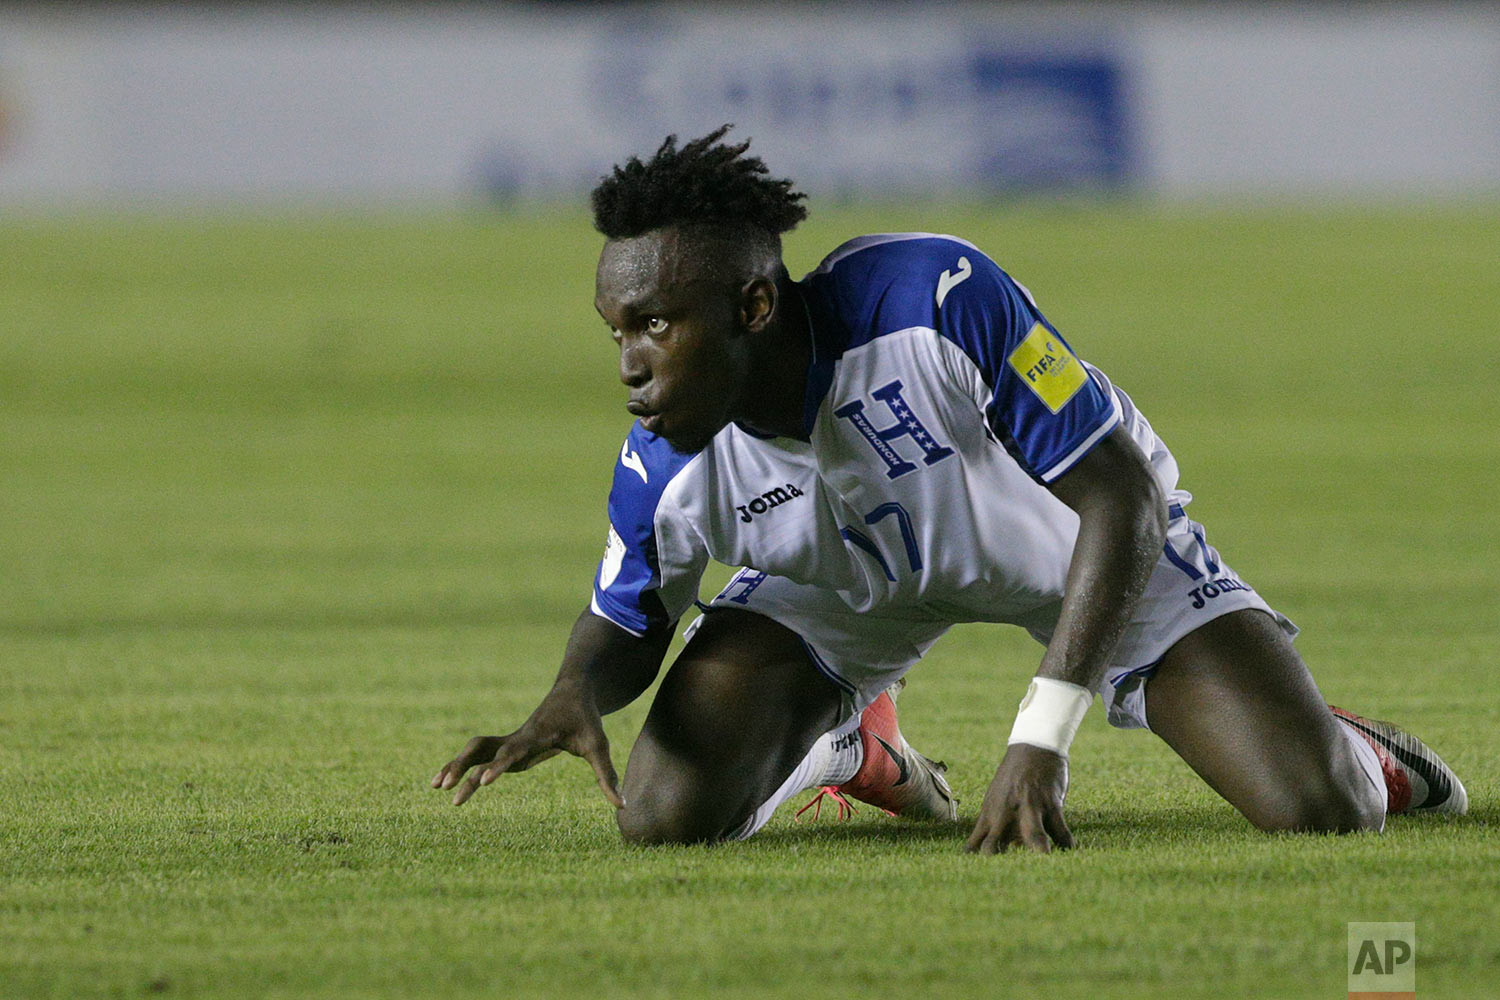 Honduras' Alberth Elis celebrates after scoring against Panama during a 2018 Russia World Cup qualifying soccer match at Rommel Fernandez Stadium in Panama City, Tuesday, June 13, 2017. The game ended in a 2-2 tie. (AP Photo/Arnulfo Franco)